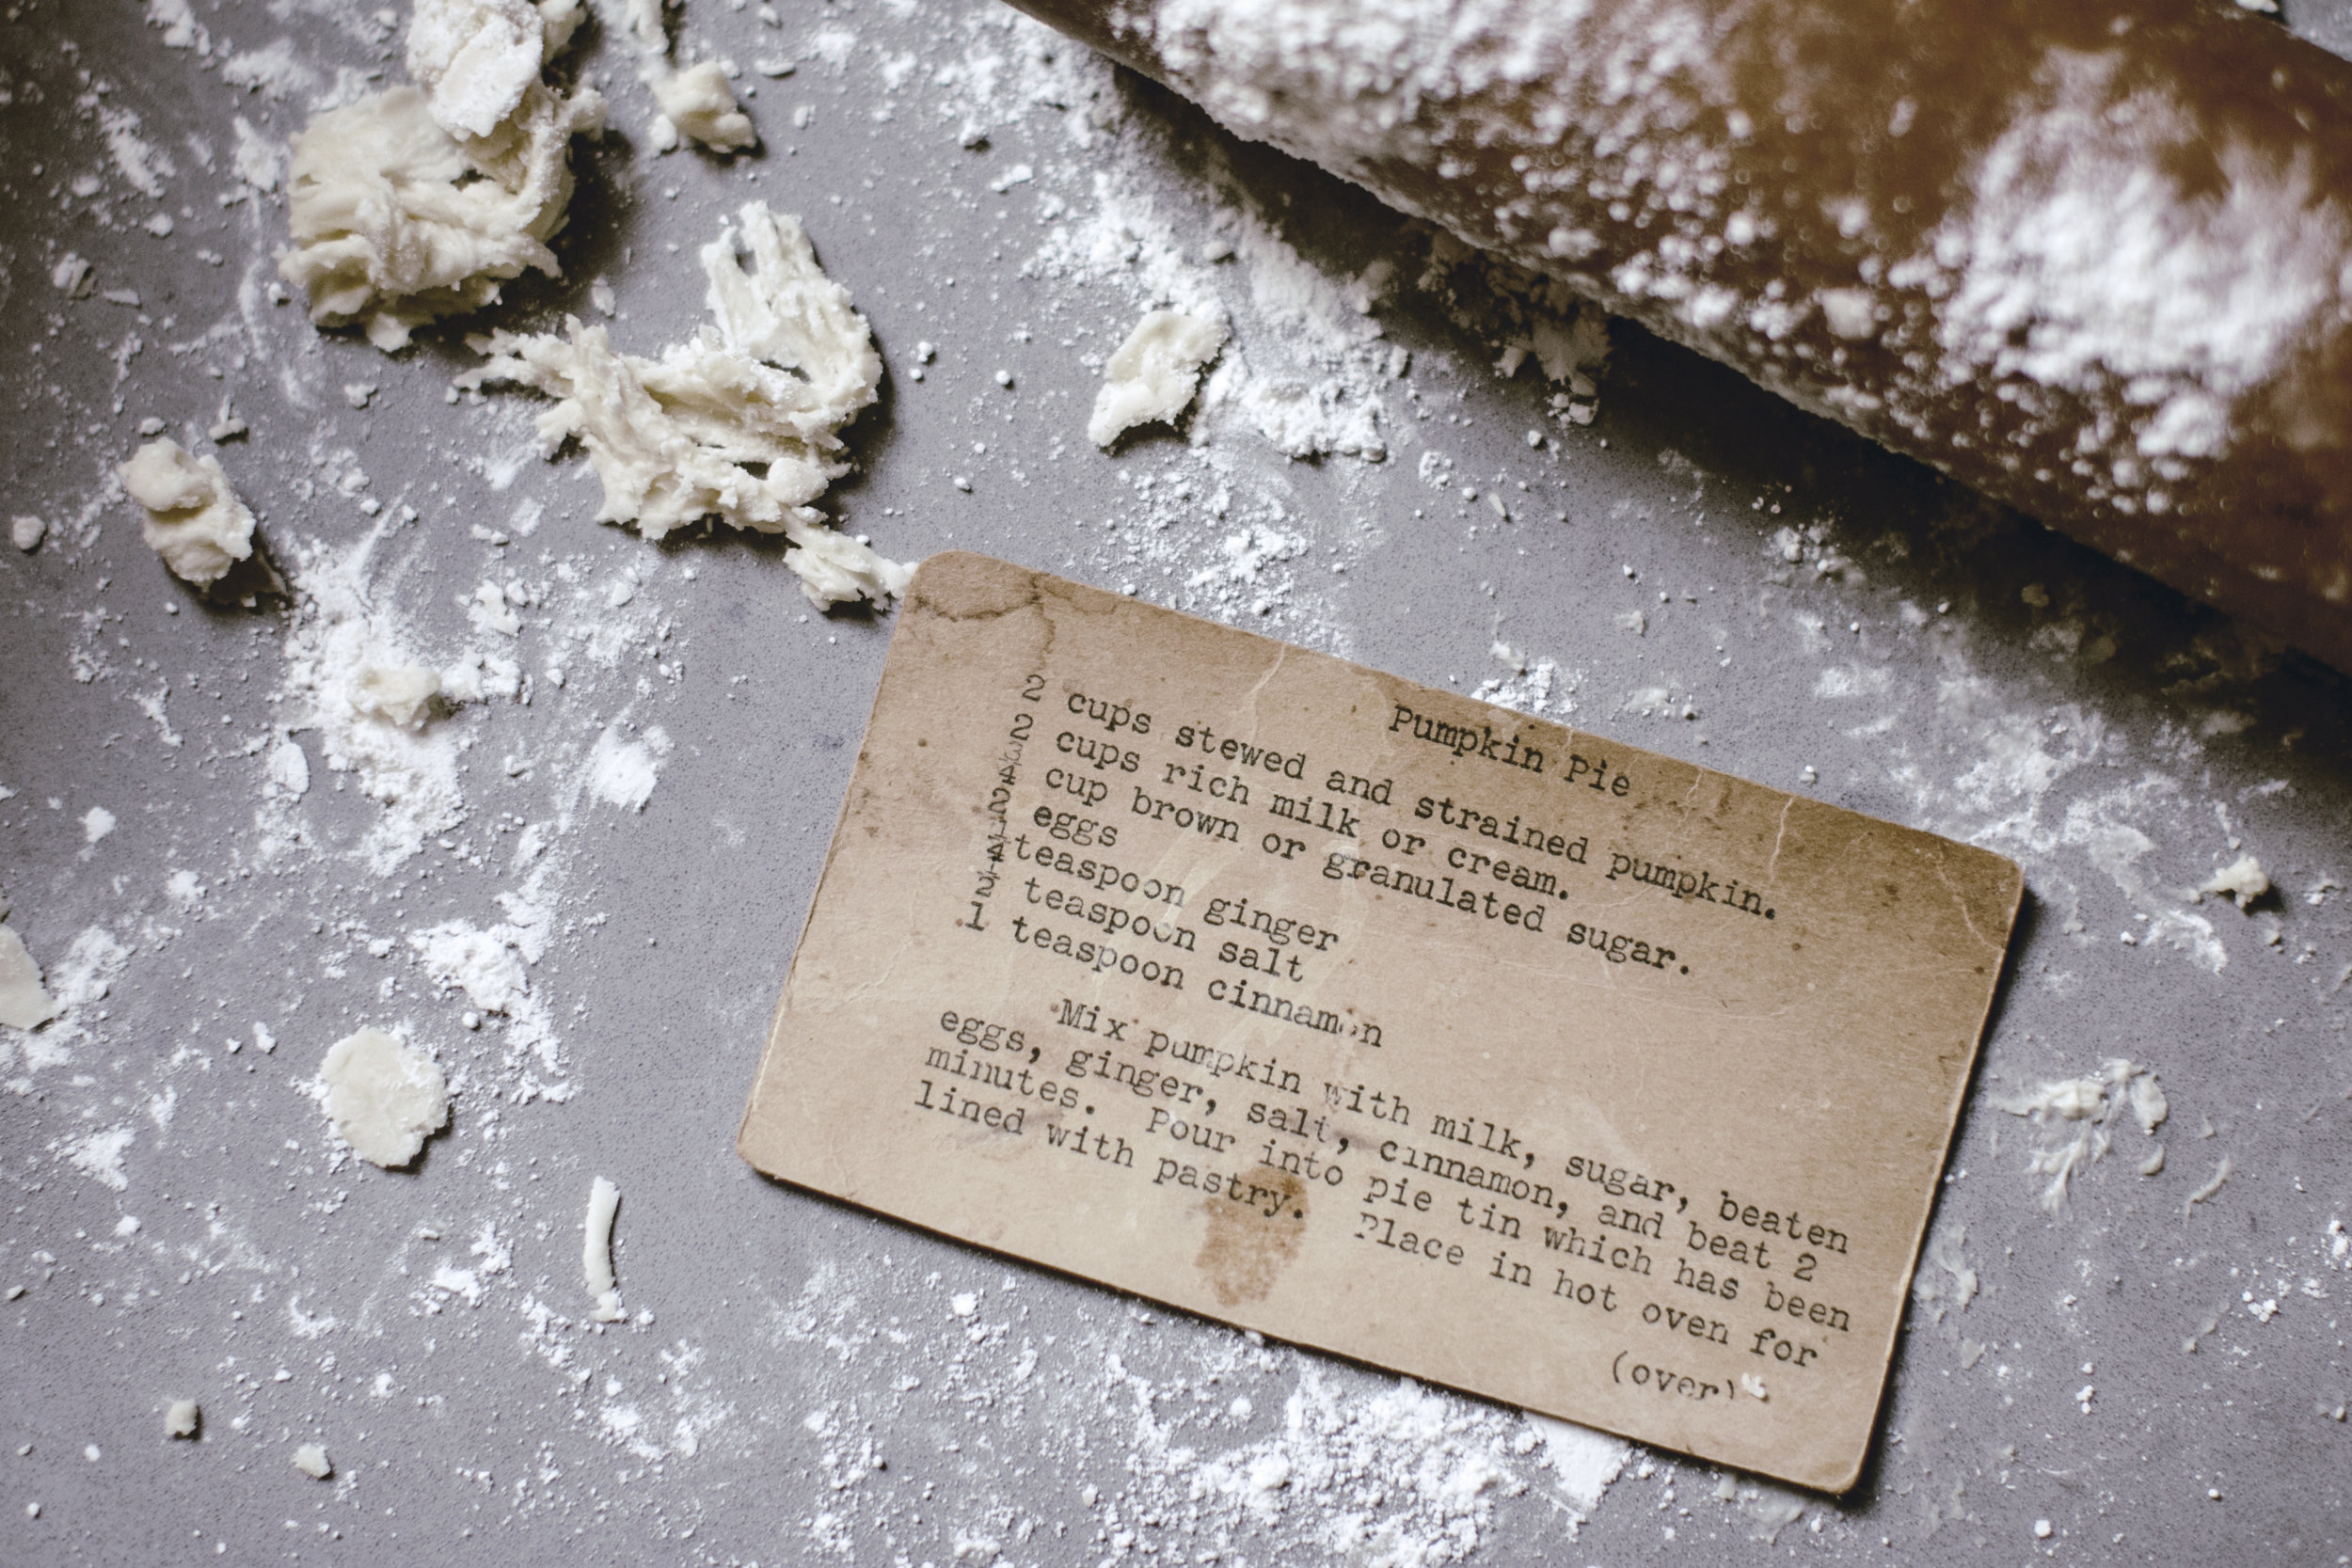 Thanksgiving Pumpkin Pie typewriter recipe card / heirloomed